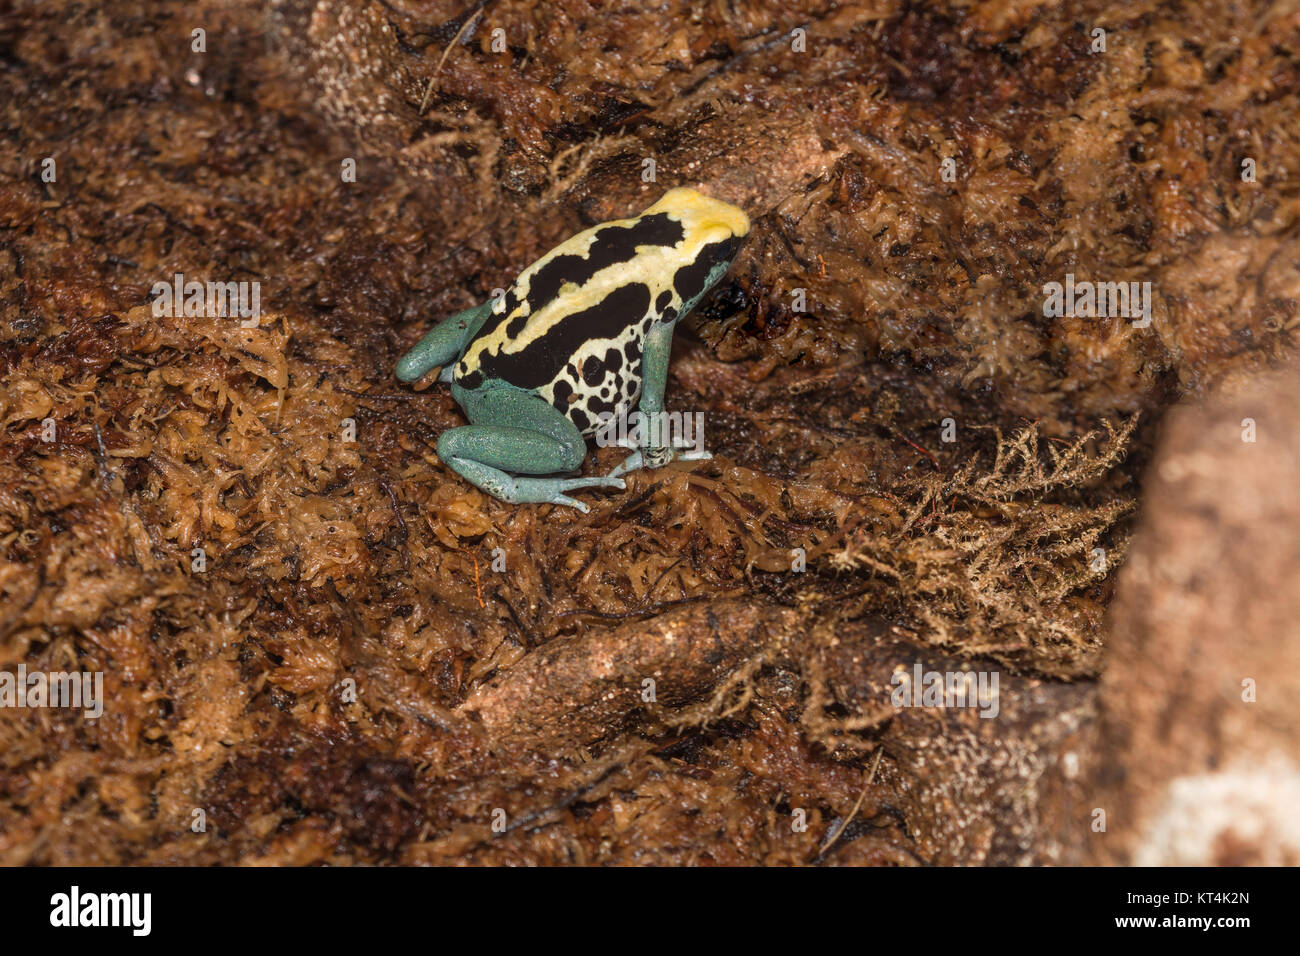 yellow poison dart frog with black dots - Stock Image